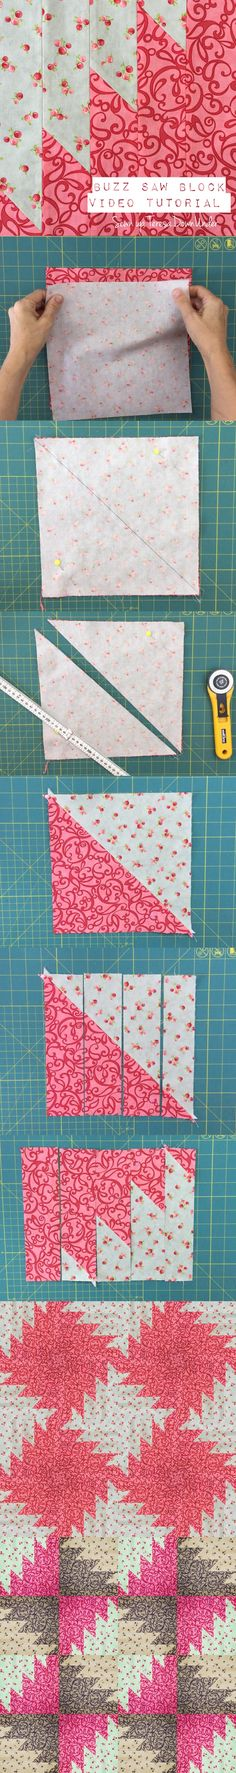 Buzz saw block - learn to make this block in this 2 minute video